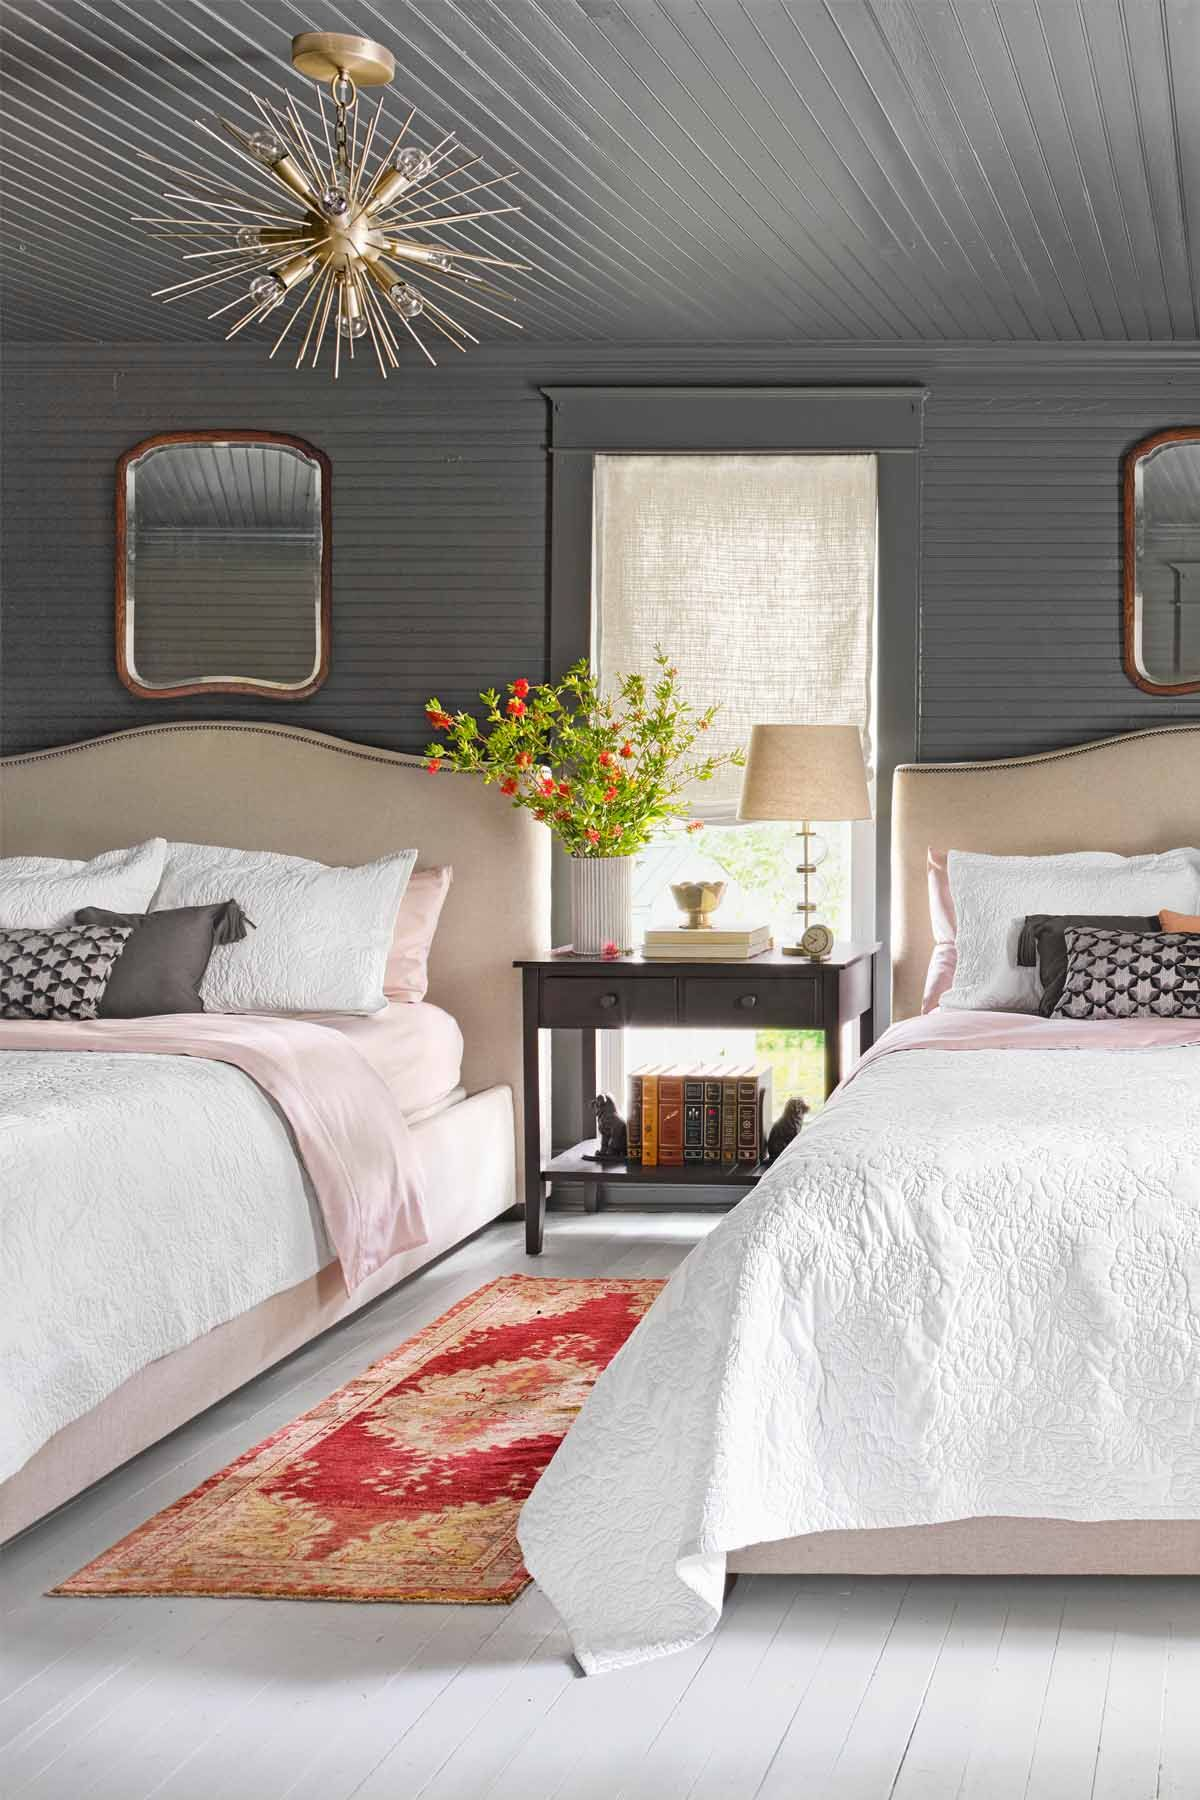 12 Best Guest Bedroom Ideas - Decor Ideas for Guest Rooms